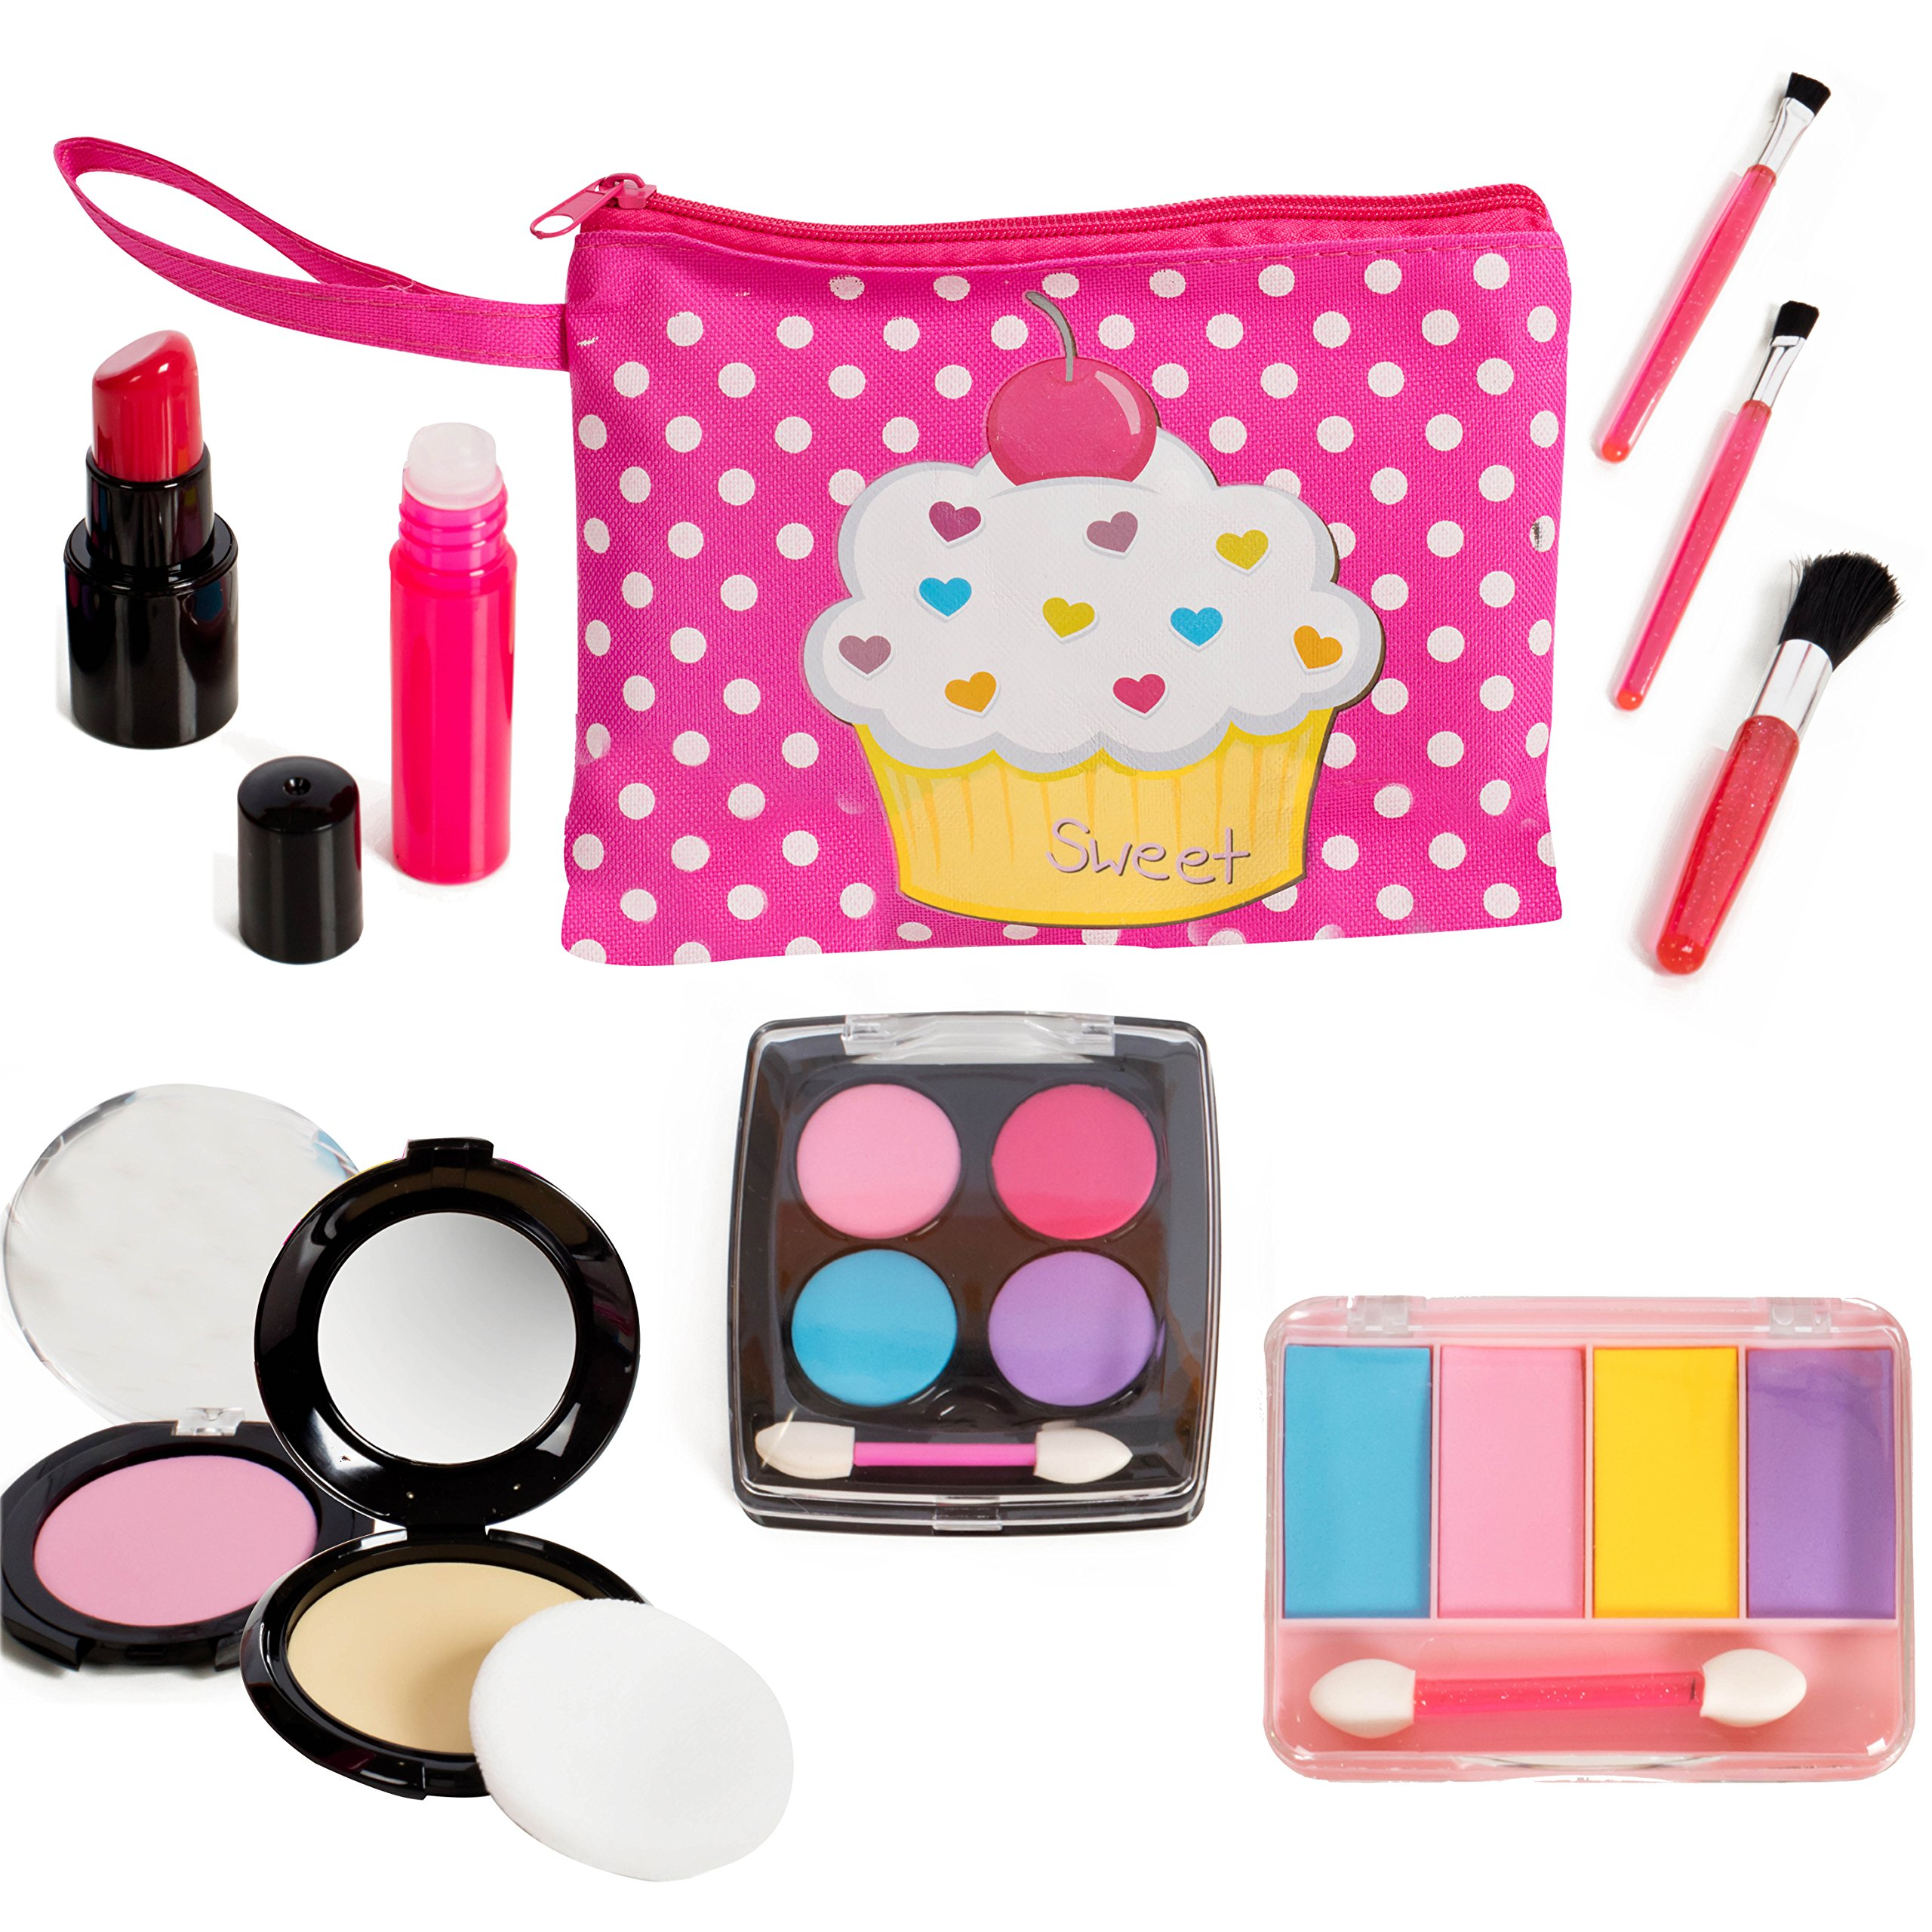 Beverly Hills Kids Pretend Play Makeup Cosmetic Kit with Bright Polka Dotted Cosmetic Bag by Beverly Hills Doll Collection TM